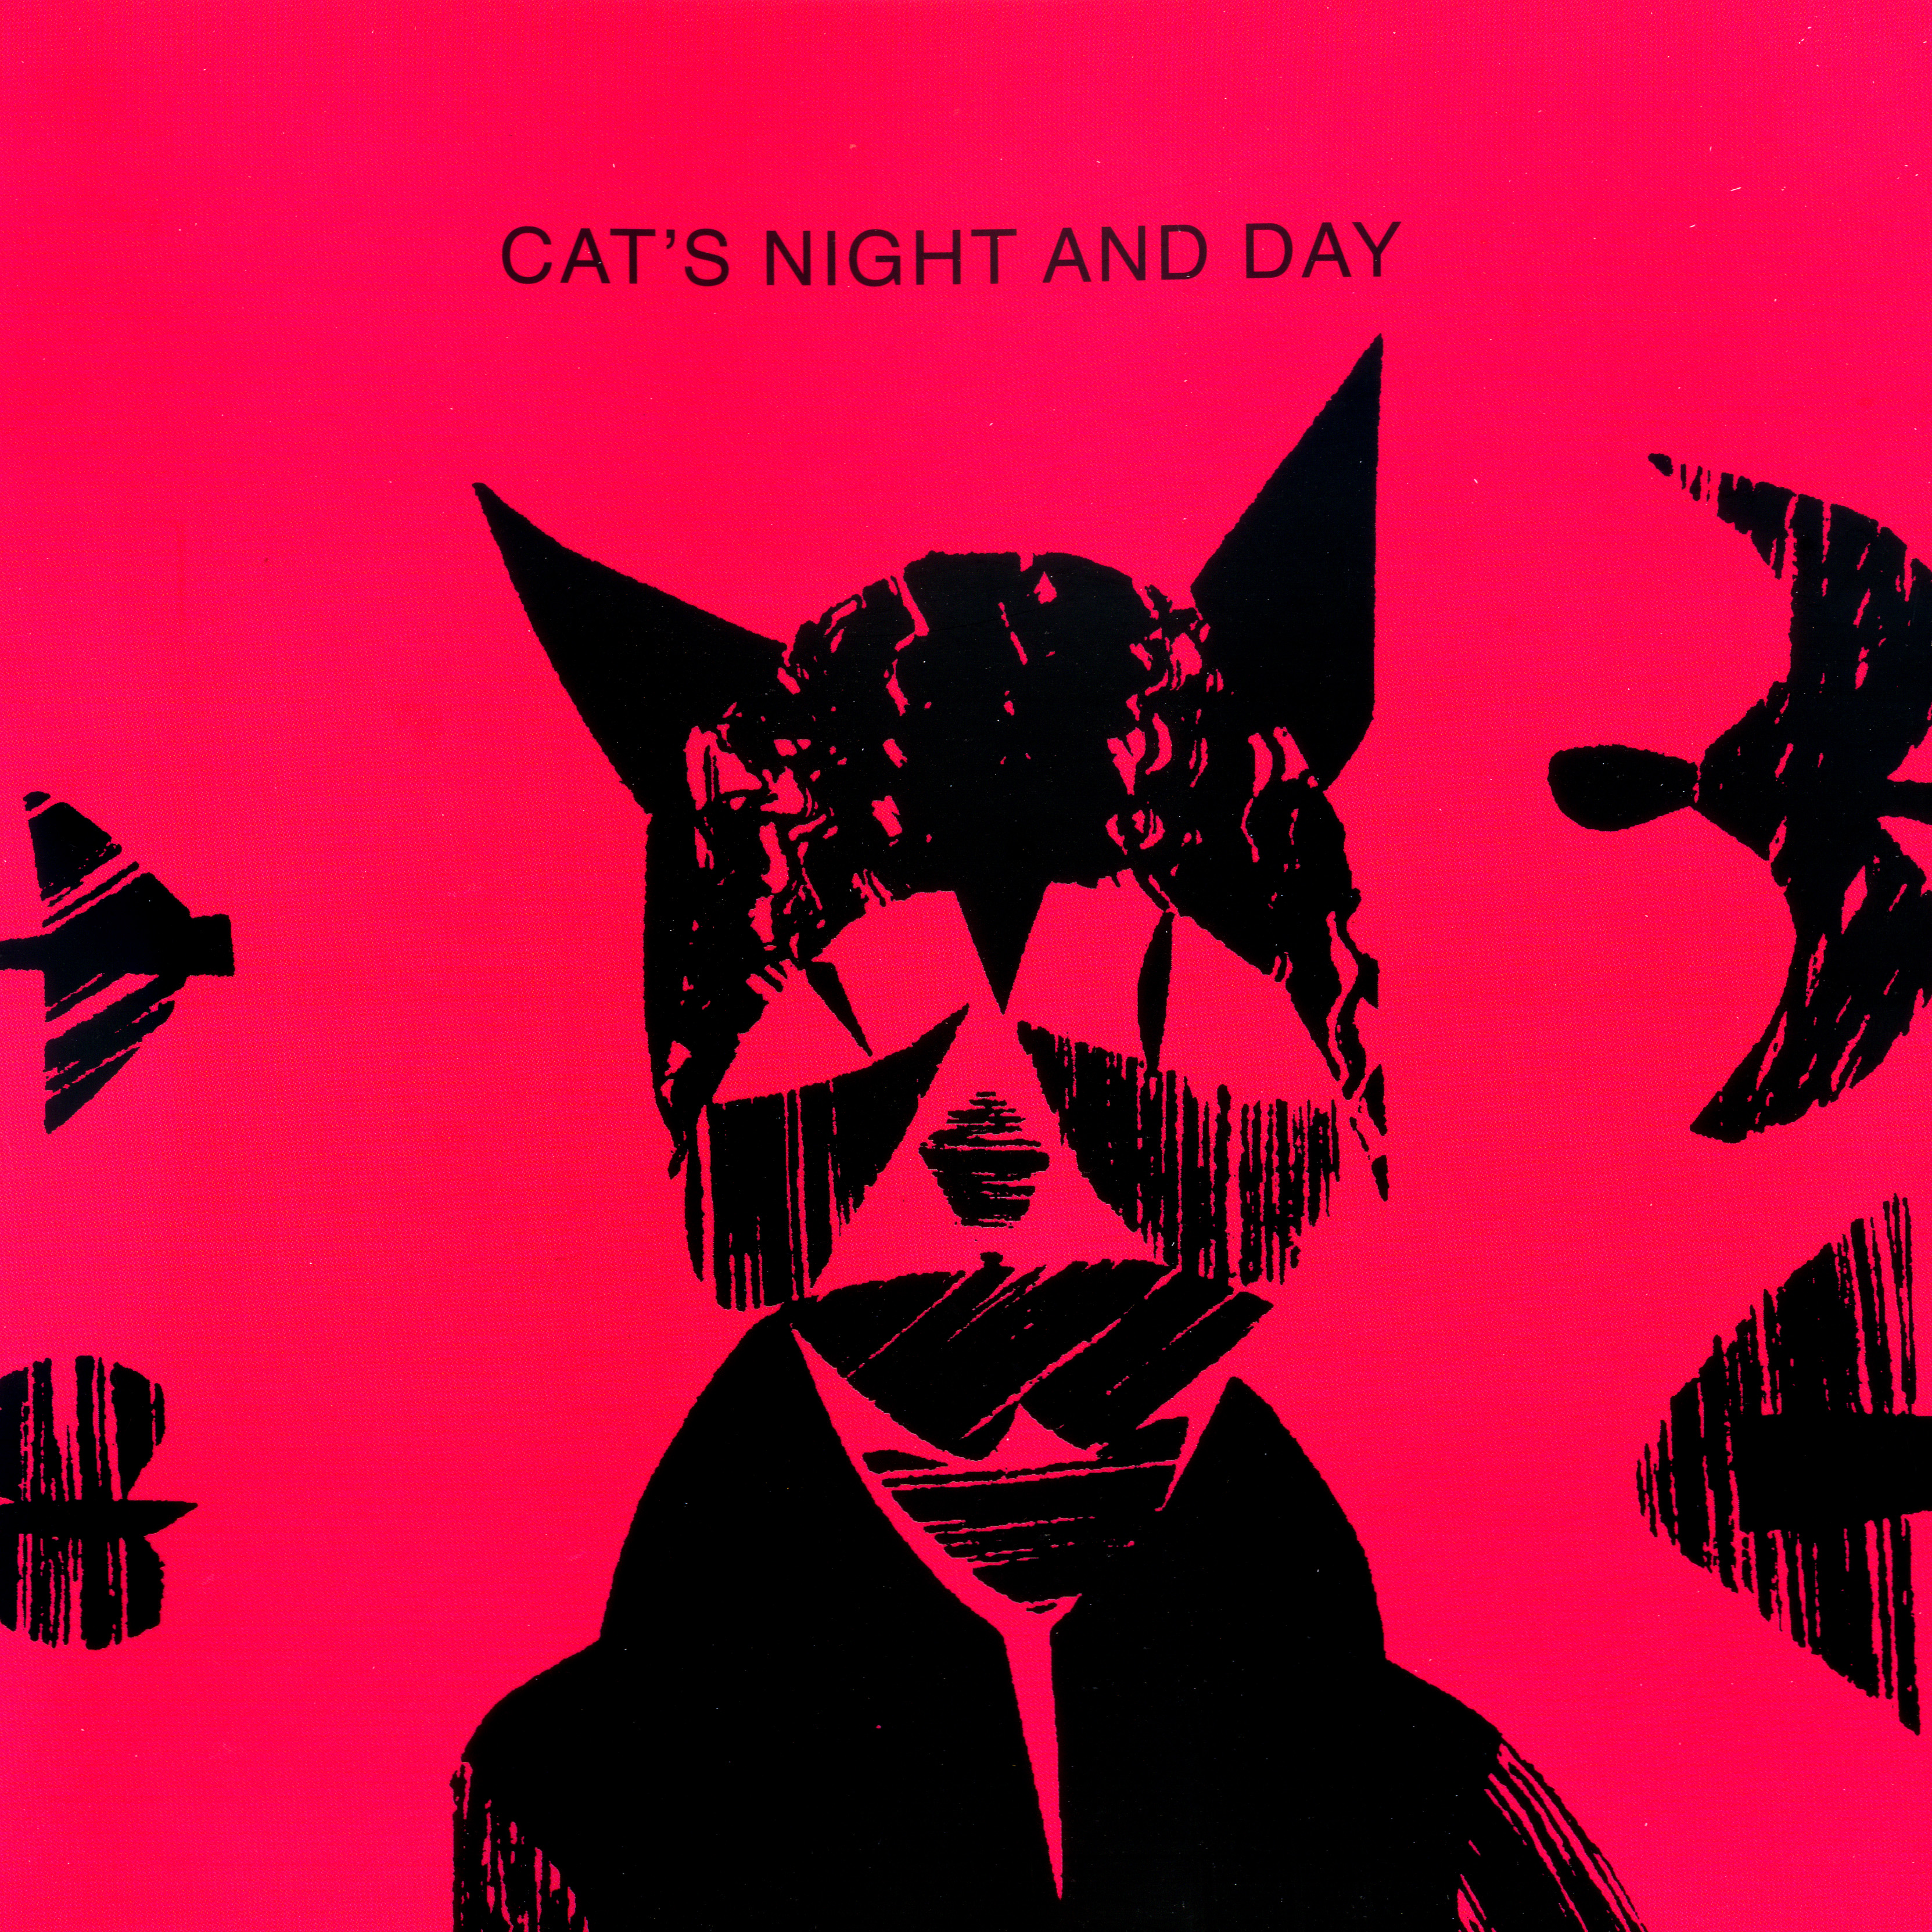 Cat's Night and Day by K. G. Subramanyan | Seagull Books